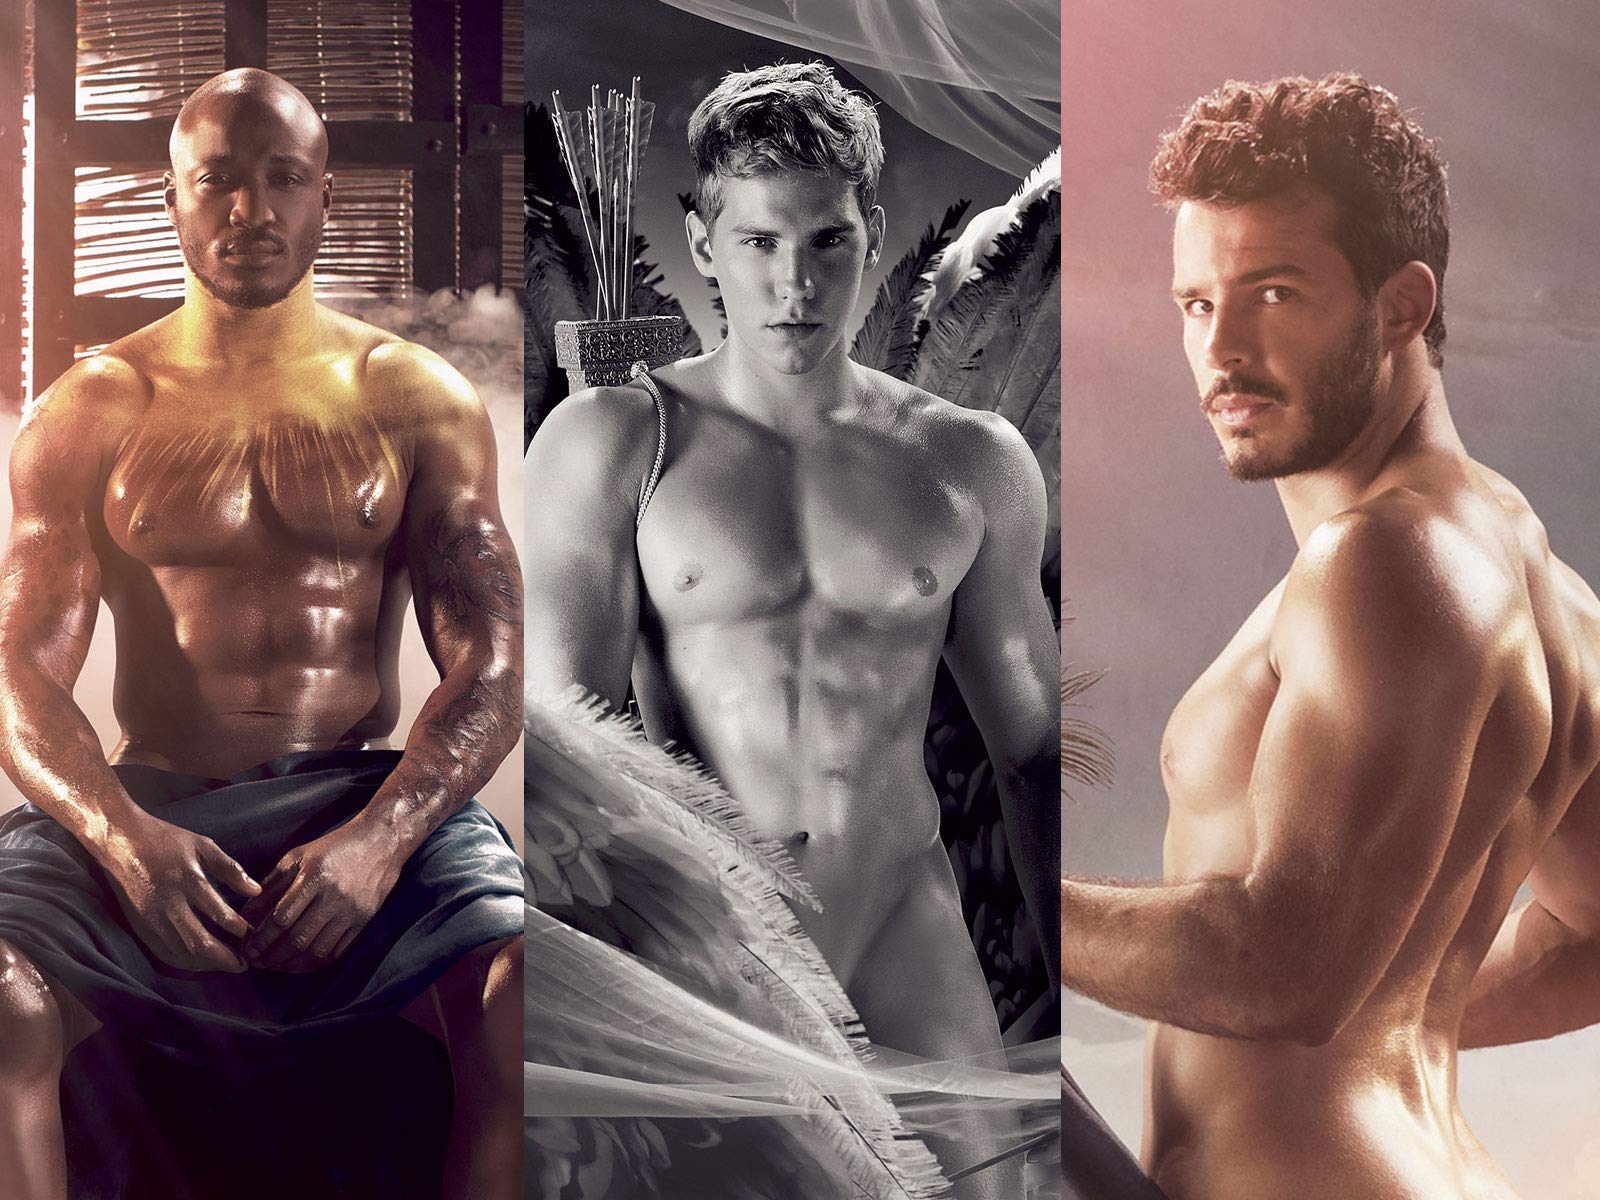 The French Rugby Team Locker Room Nudes DIEUX DU STADE Official Calendar 2019 + 12 DIEUX DU STADE Fridge Magnets Set by GIFTSCITY (Image #5)